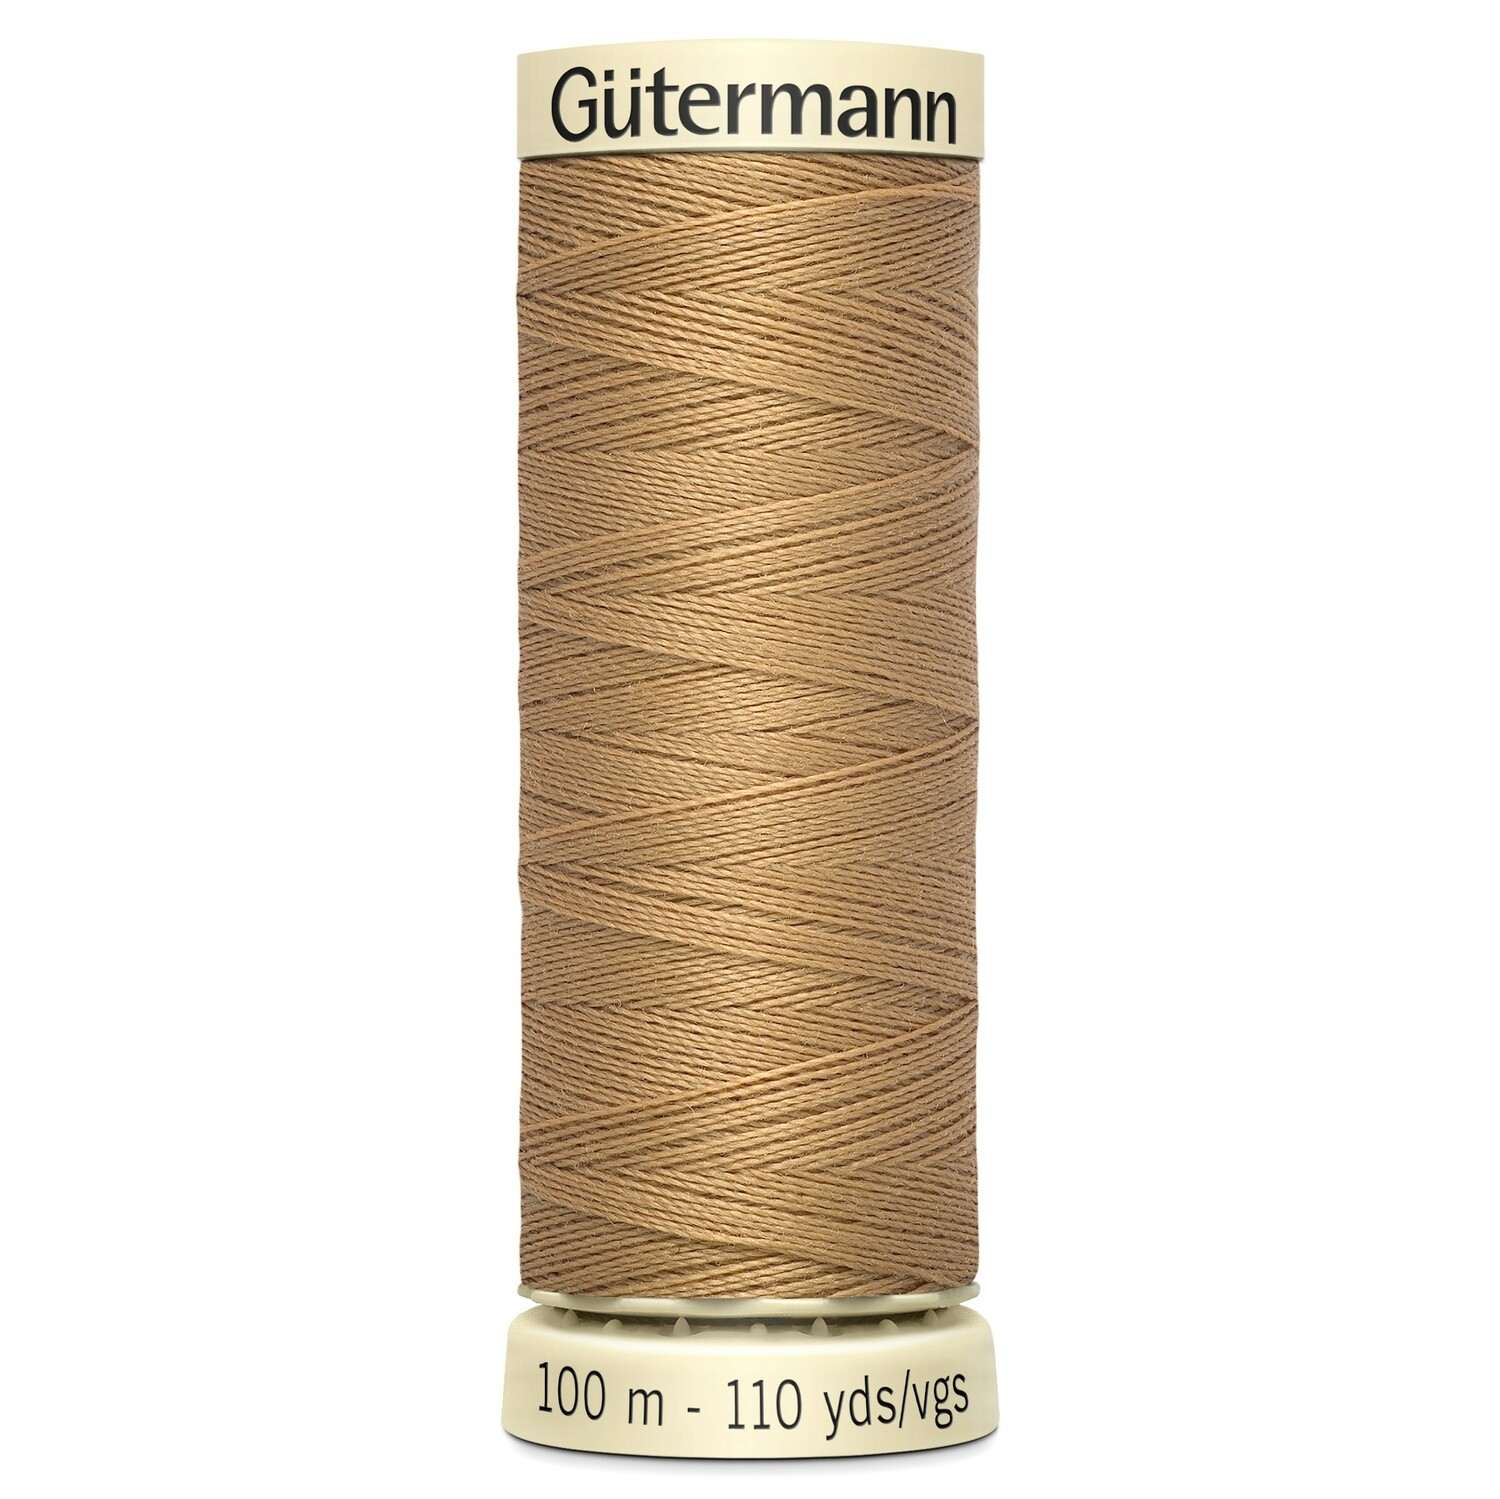 Gutermann Sew-All thread 591